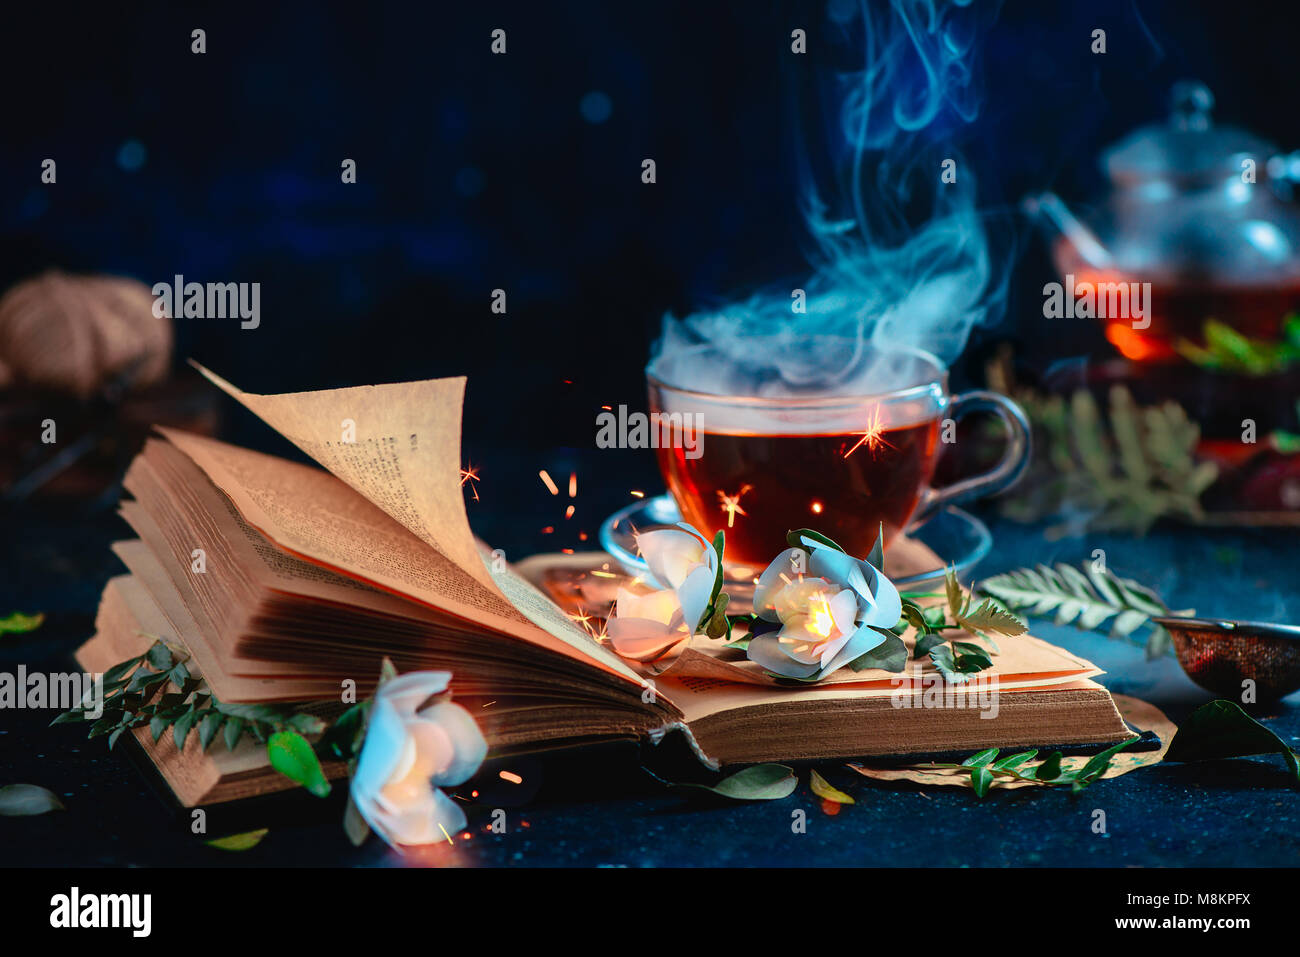 Steaming cup of tea on an open book with magical burning flowers. Fantasy reading concept. Dark still life with - Stock Image